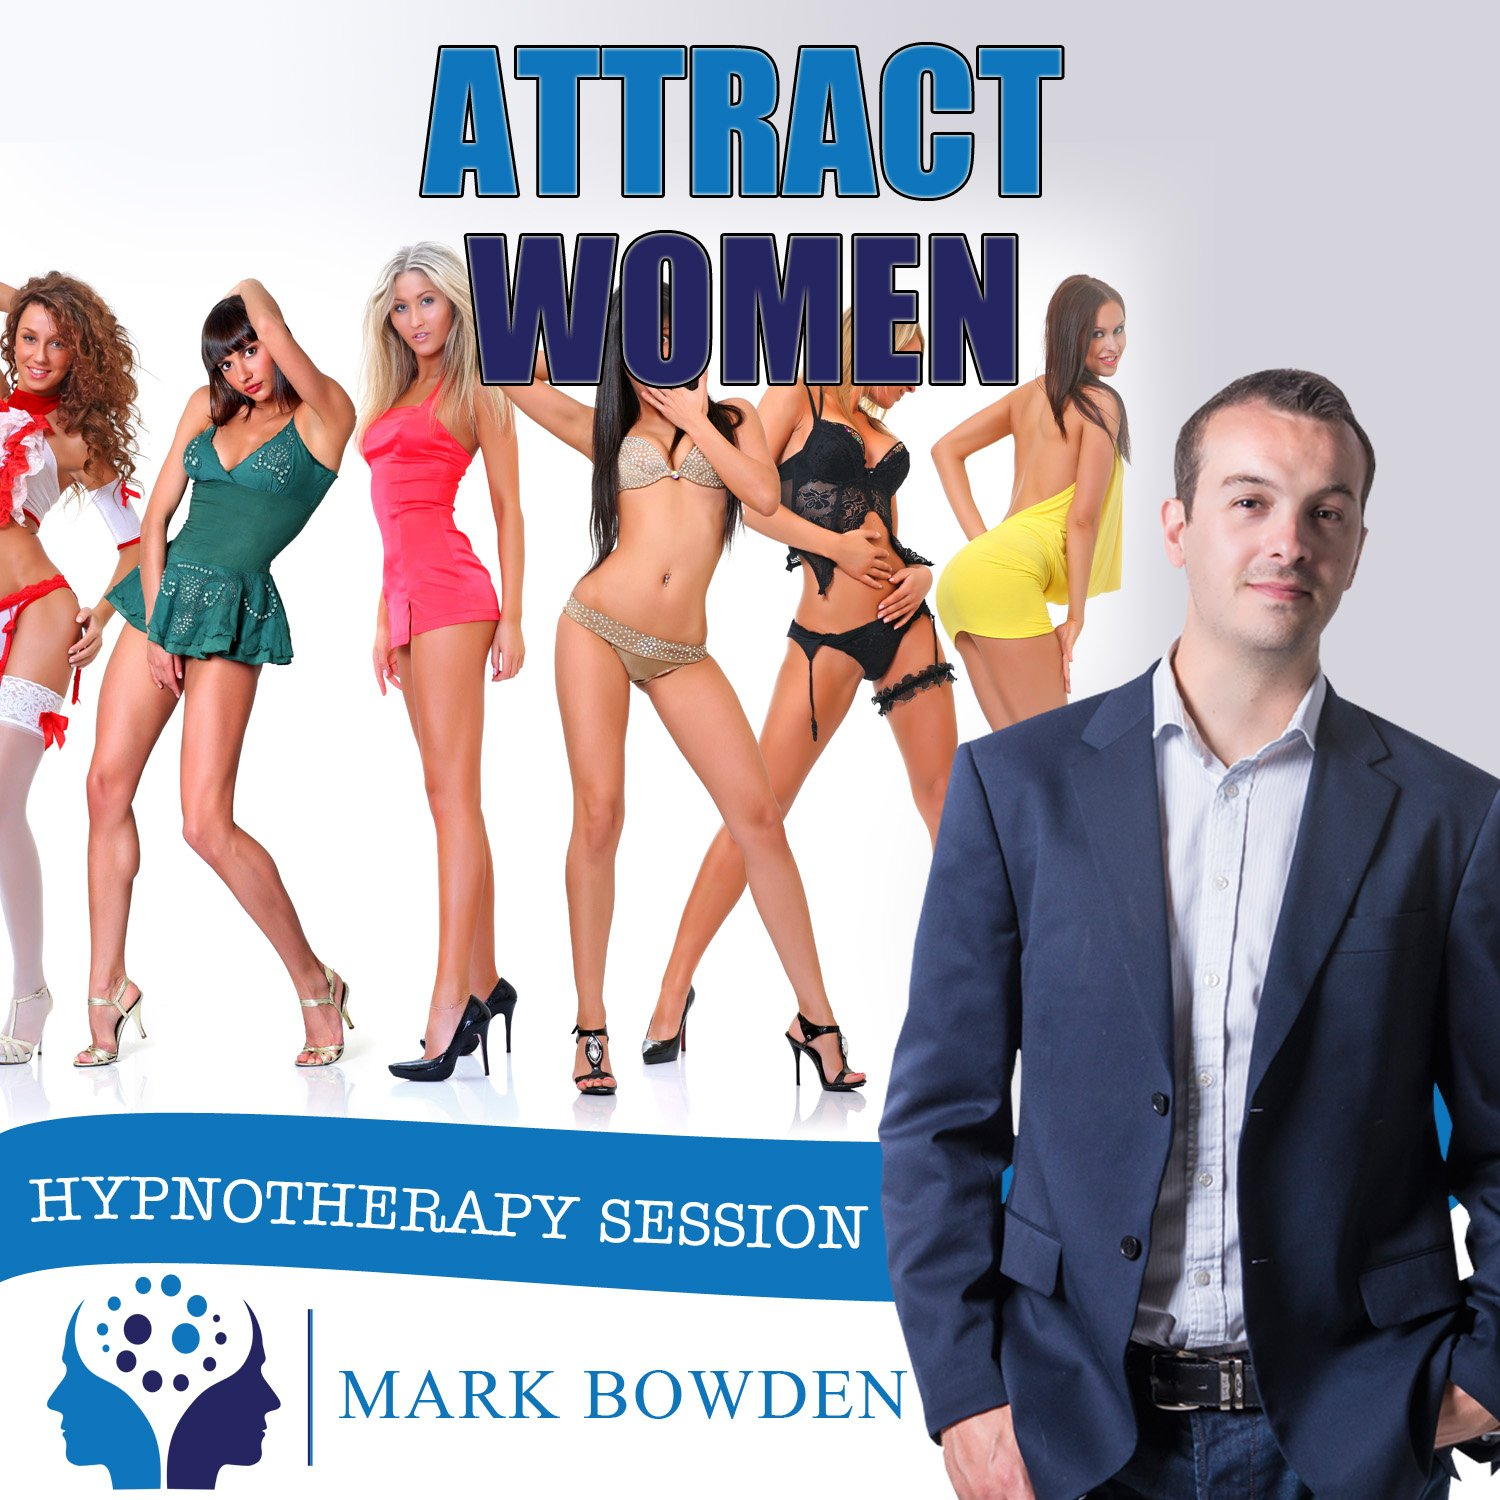 Attract Women Hypnosis CD - Become More Attractive to Women & Feel More Relaxed When Meeting New People - Get More Dates & Find Romance by Mark Bowden MSc BSc Dip Hyp